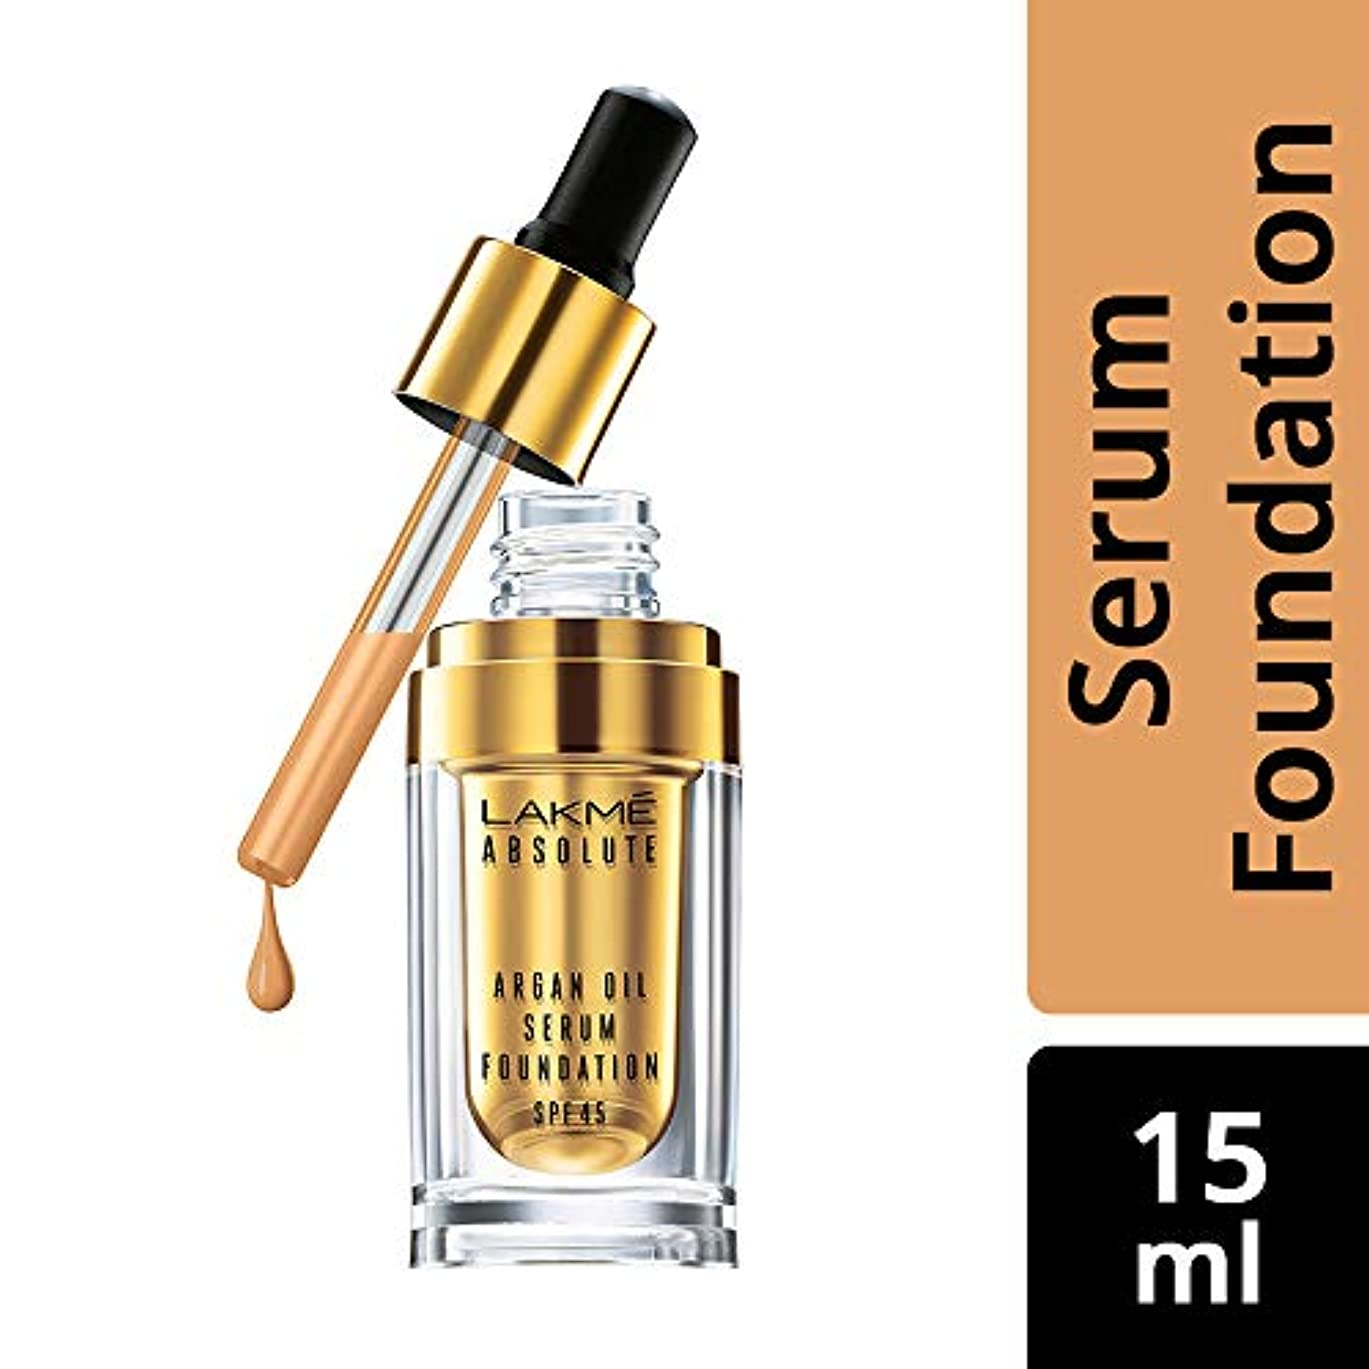 役立つ完璧非効率的なLakme Absolute Argan Oil Serum Foundation with SPF 45, Ivory Cream, 15ml